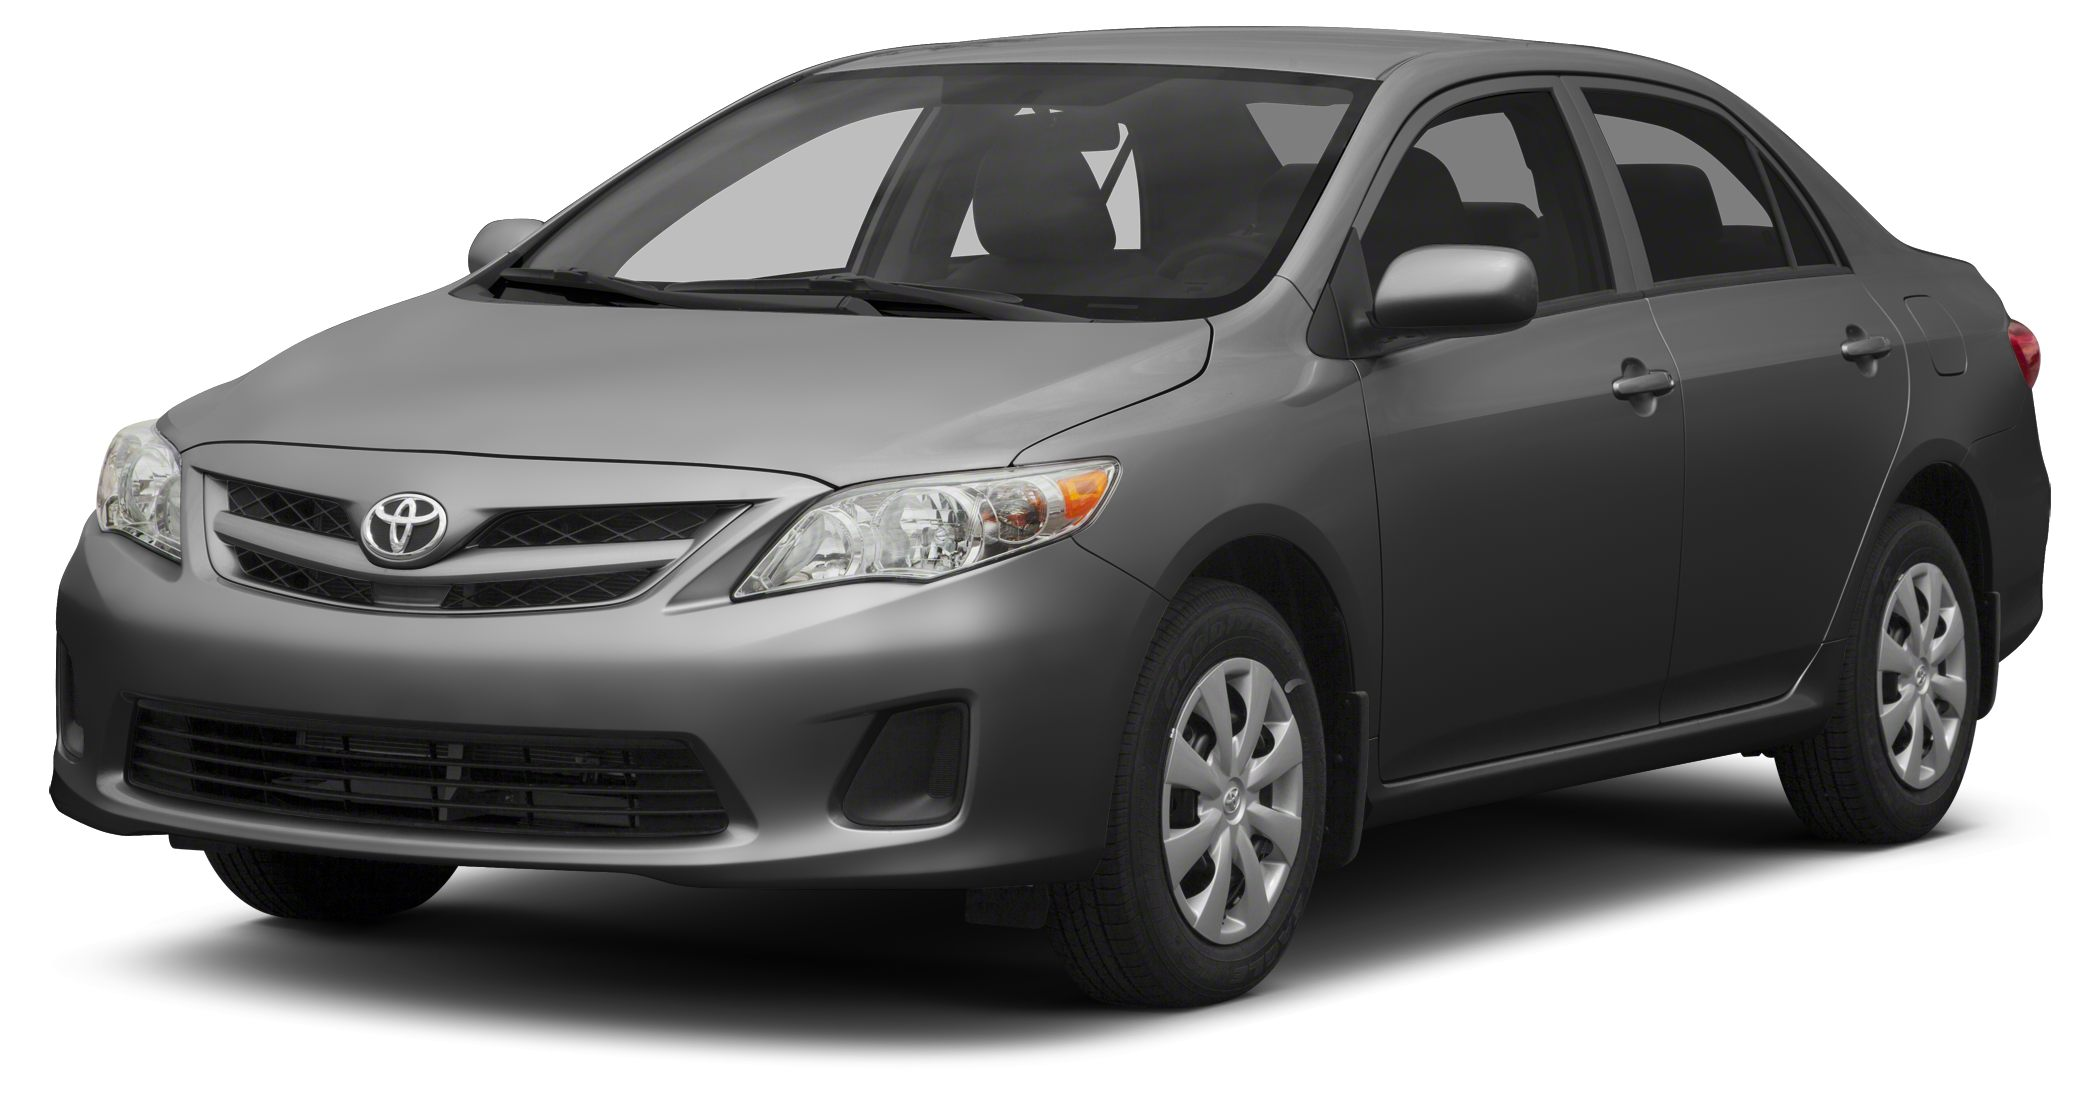 2012 Toyota Corolla LE LE trim FUEL EFFICIENT 34 MPG Hwy26 MPG City CARFAX 1-Owner LOW MILES -